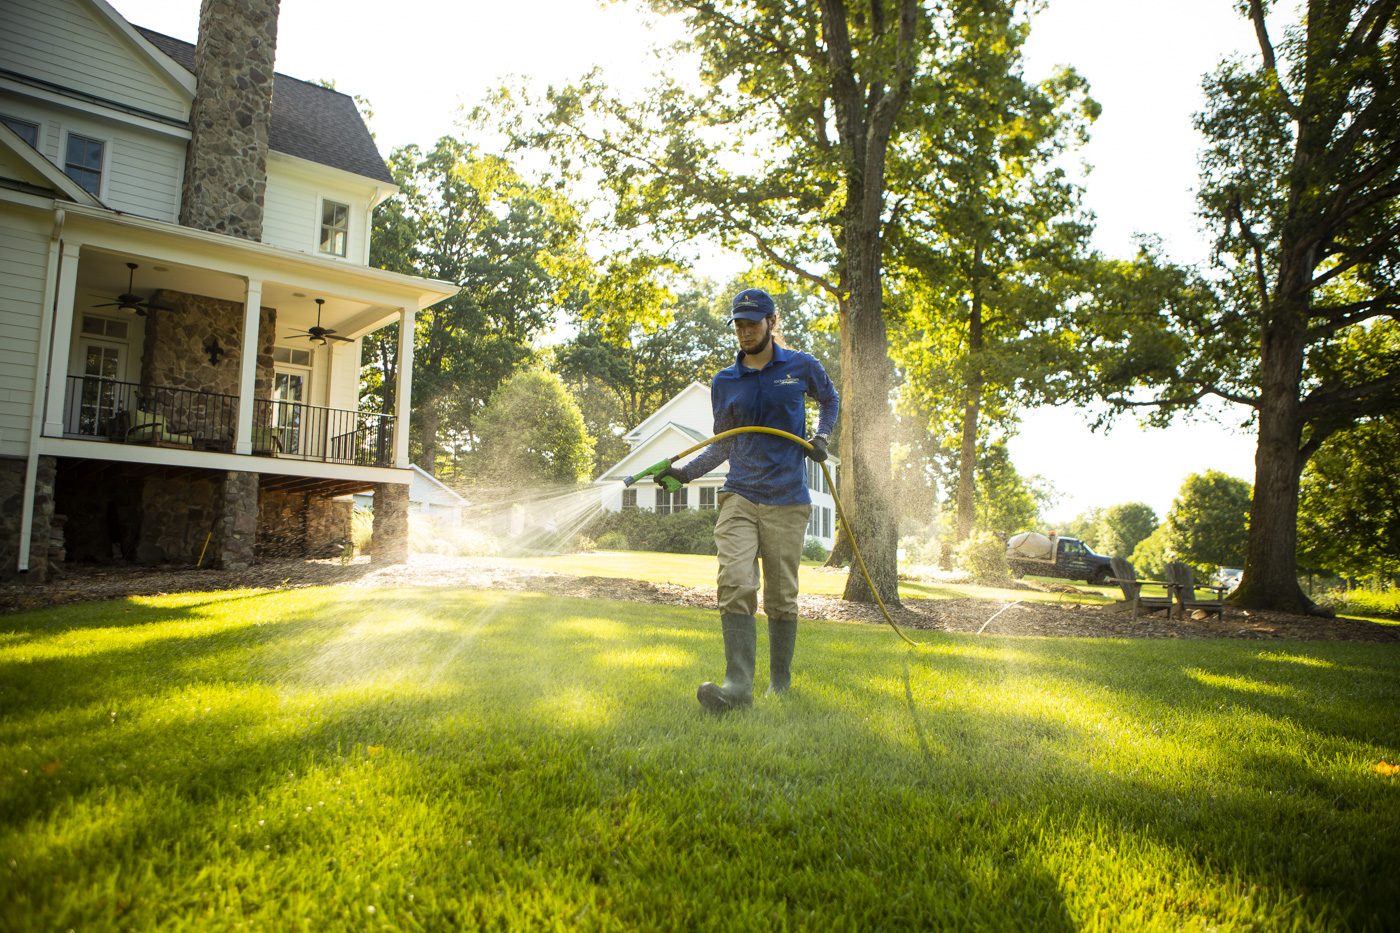 10 Character Traits That are Perfect for New Lawn Care or Landscaping Careers